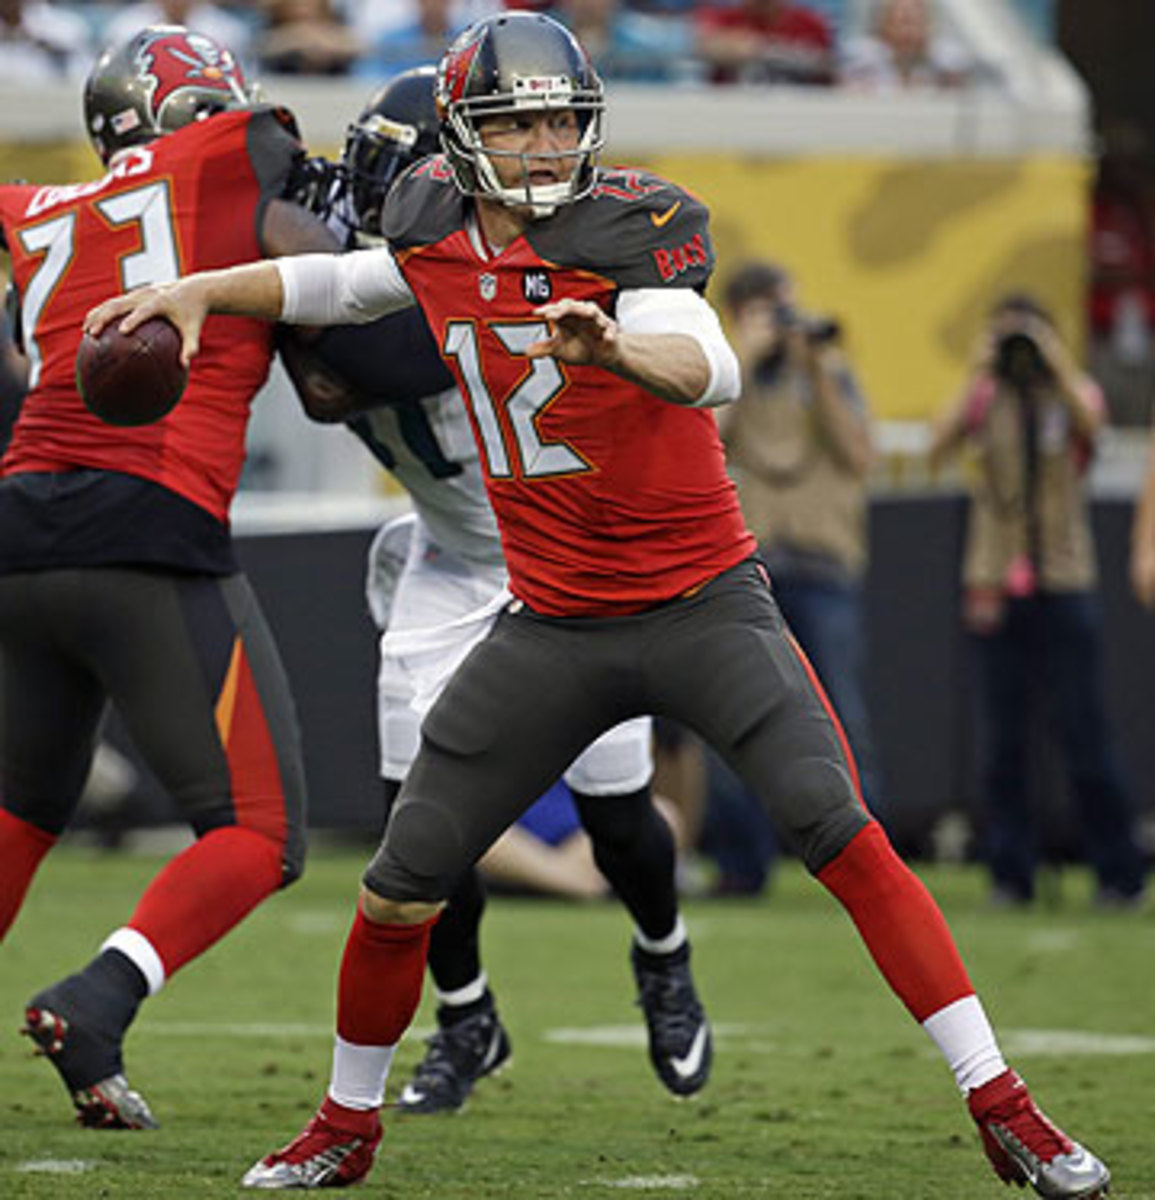 Josh McCown has looked good at camp, but did not play well—two turnovers—in the Bucs' first preseason game. (John Raoux/AP)